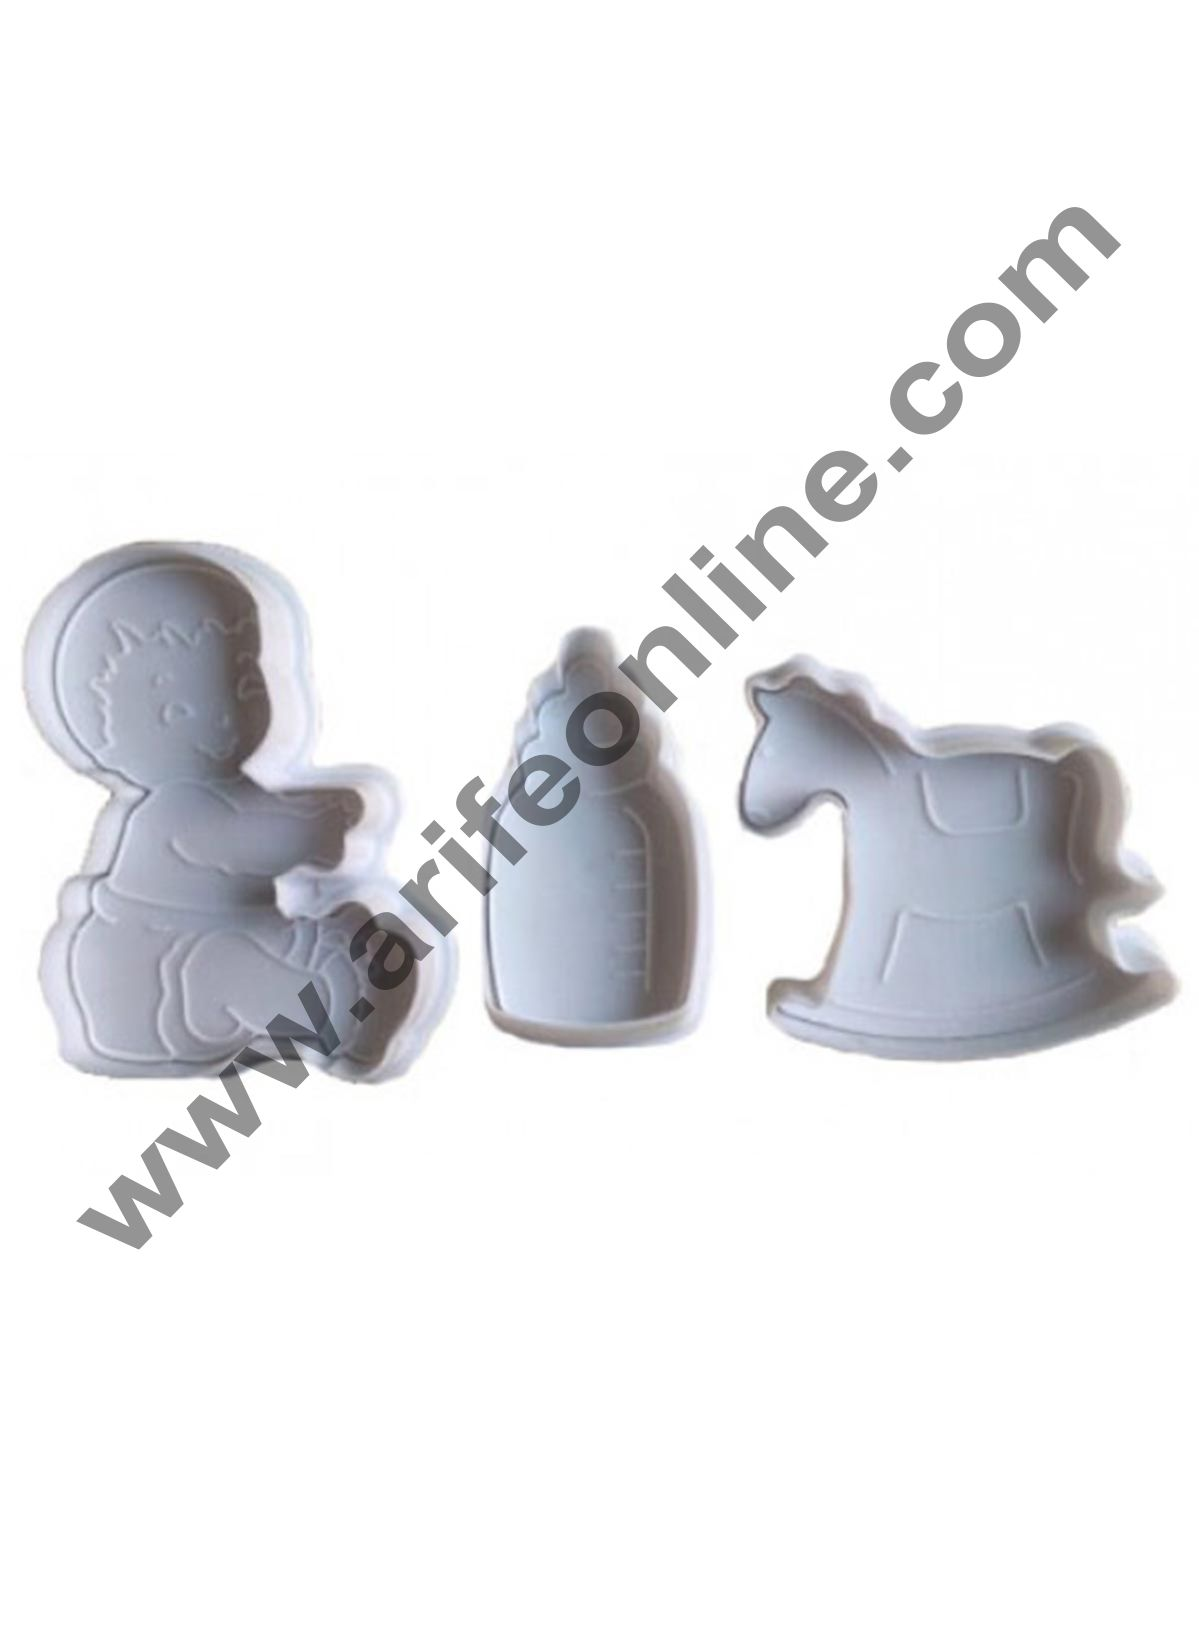 Cake Decor 3 pcs Baby Plunger Cutter